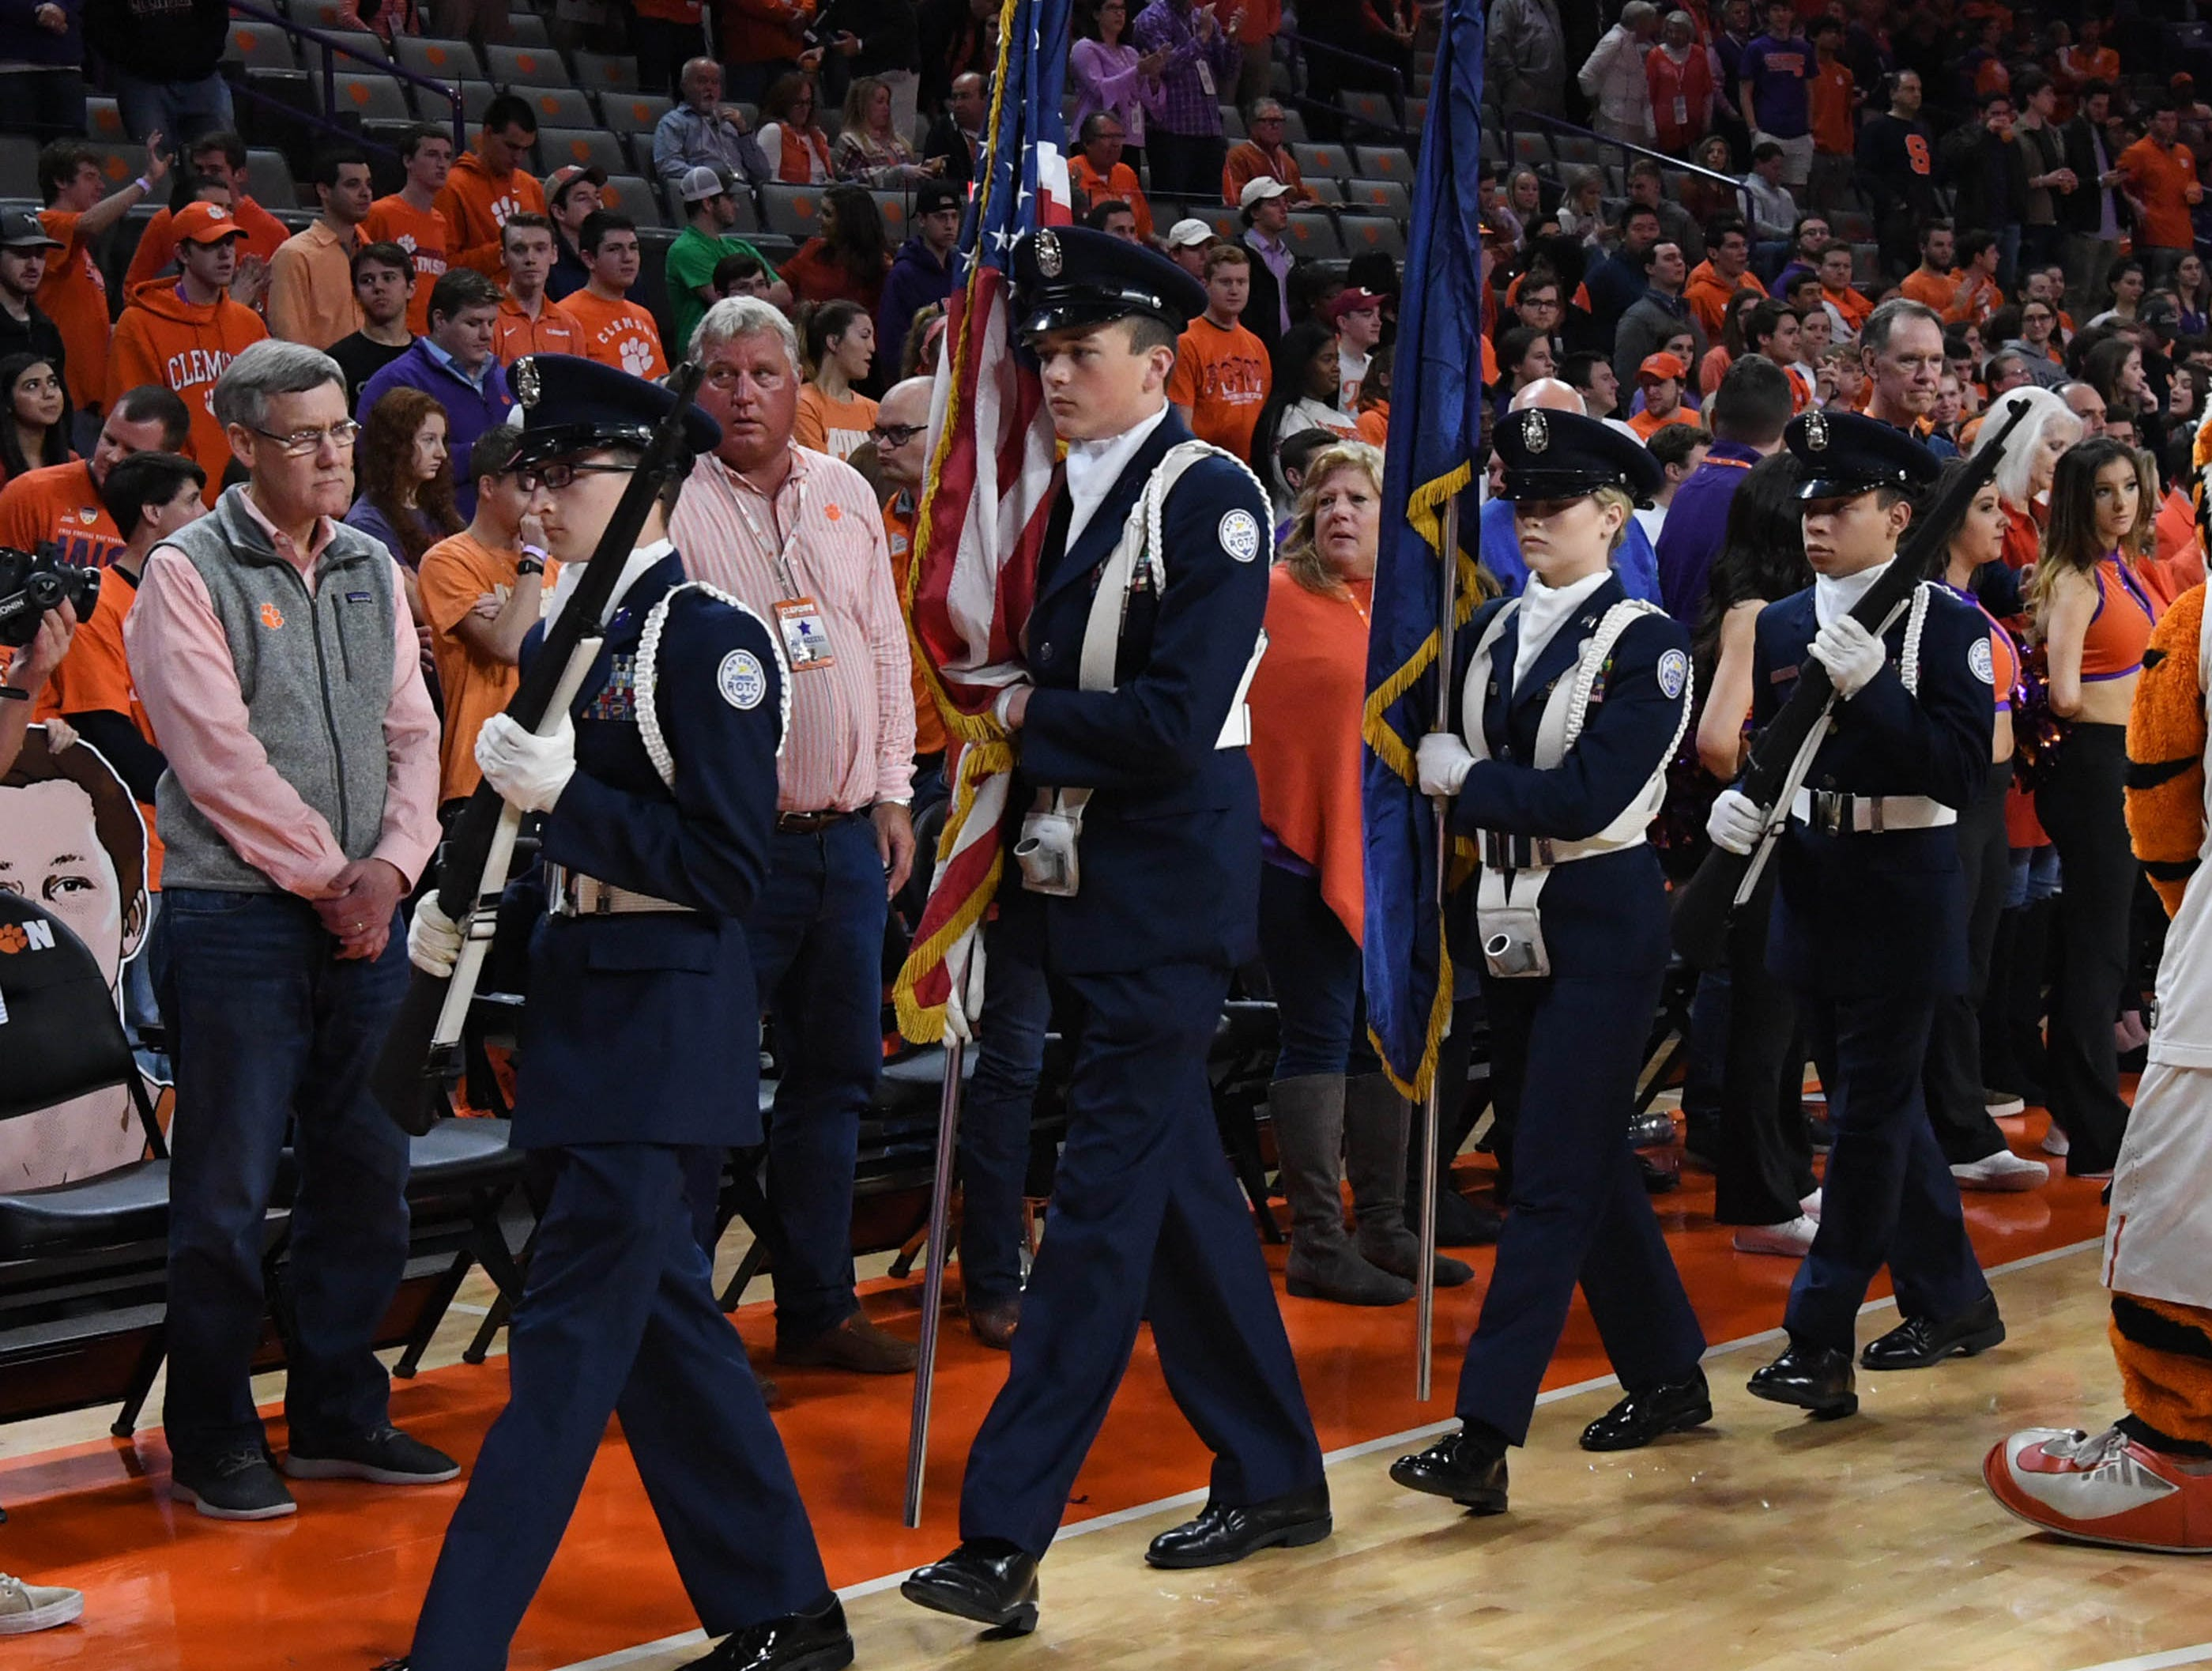 The D.W. Daniel Air Force JROTC honor guard before tipoff with Syracuse in Littlejohn Coliseum in Clemson Saturday, March 9, 2019.